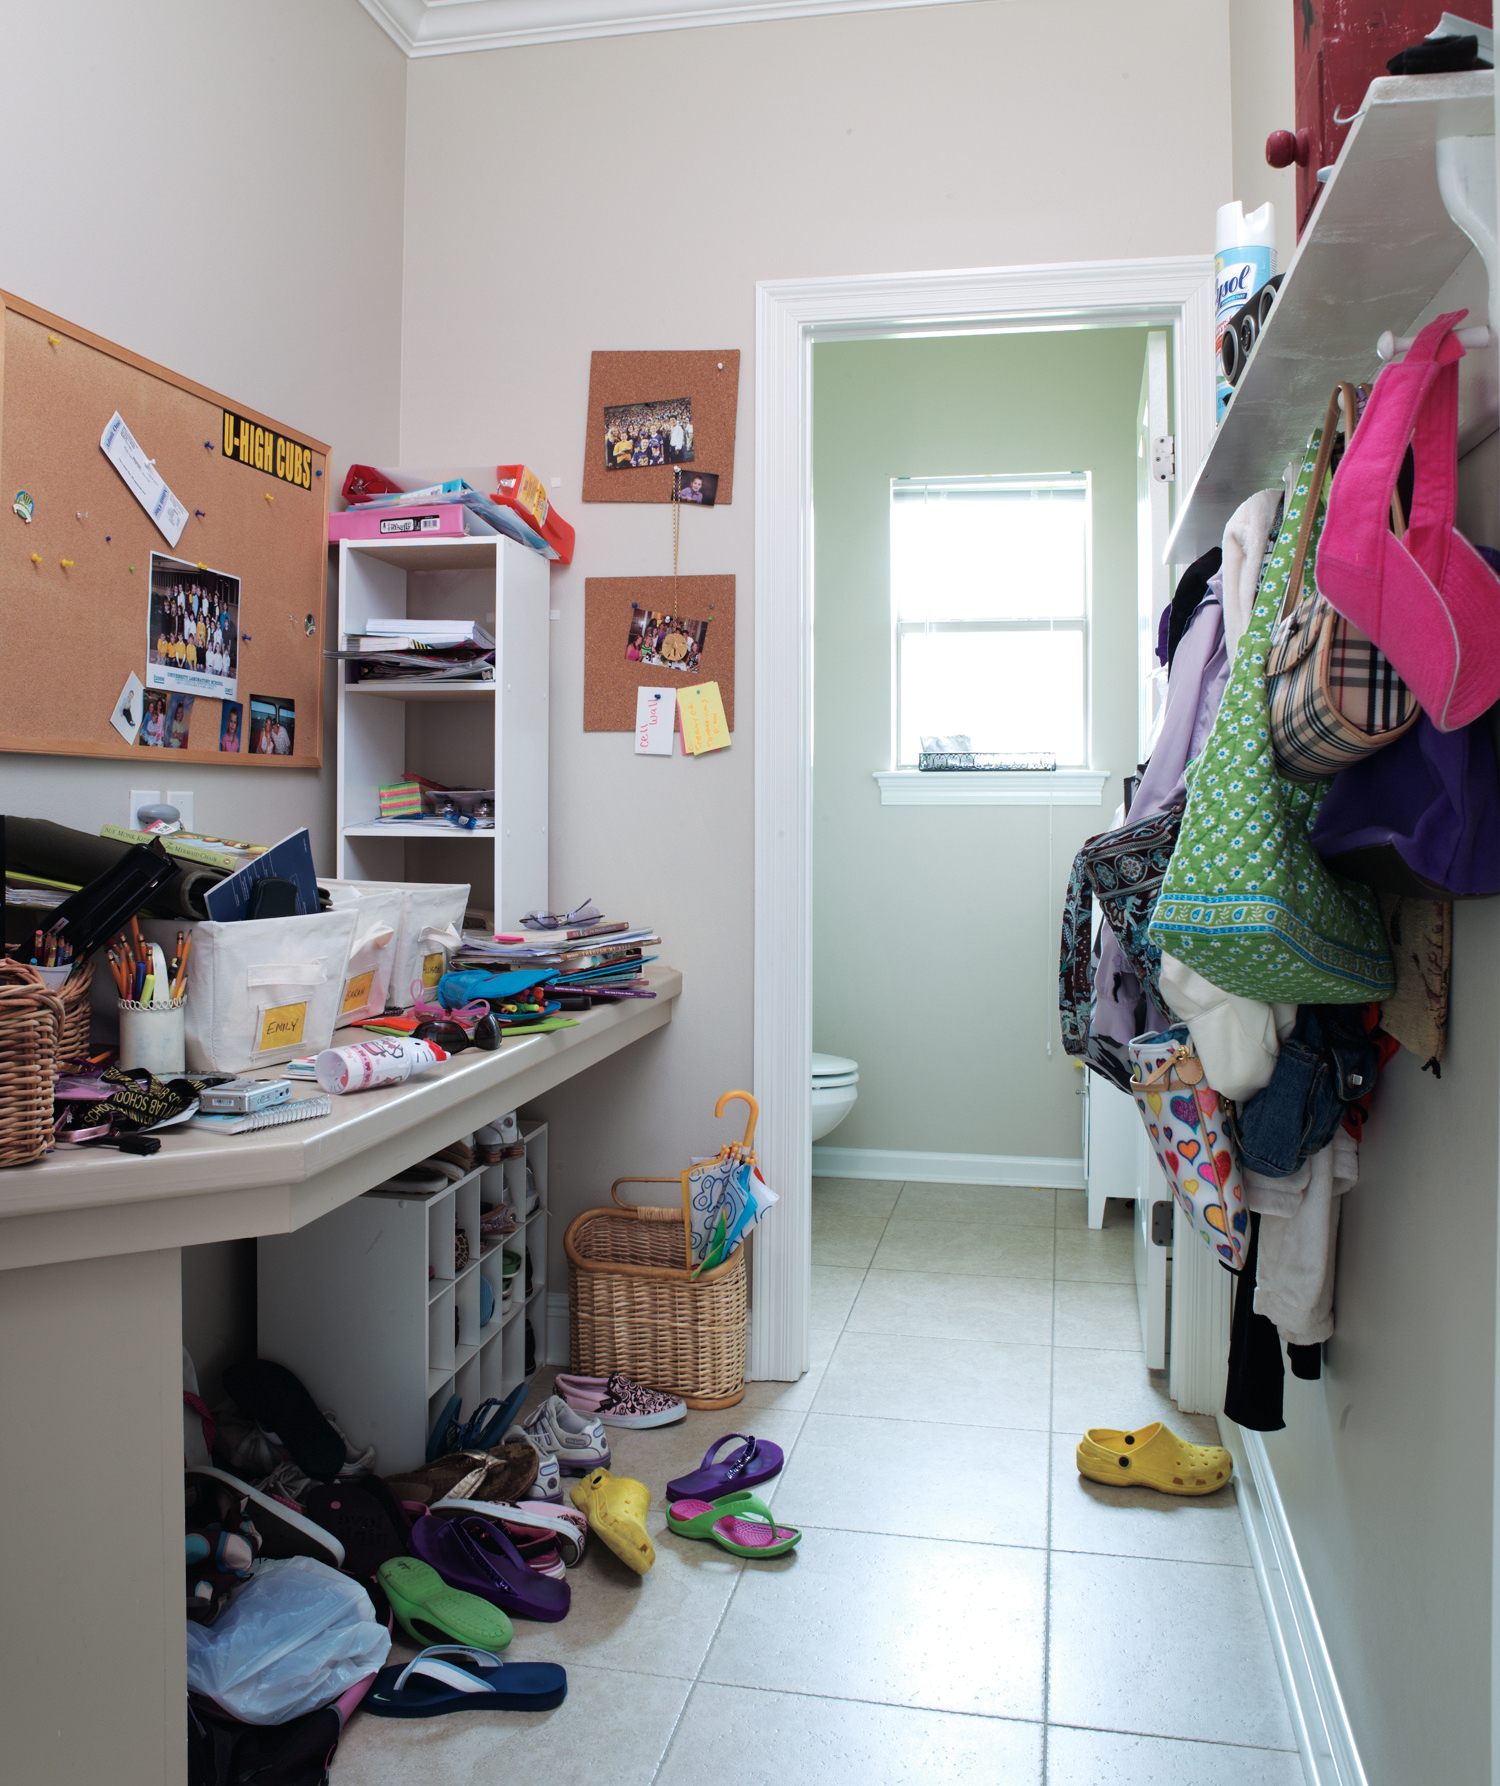 Messy Kitchen Pictures: Get Organized With These Home Makeover Ideas